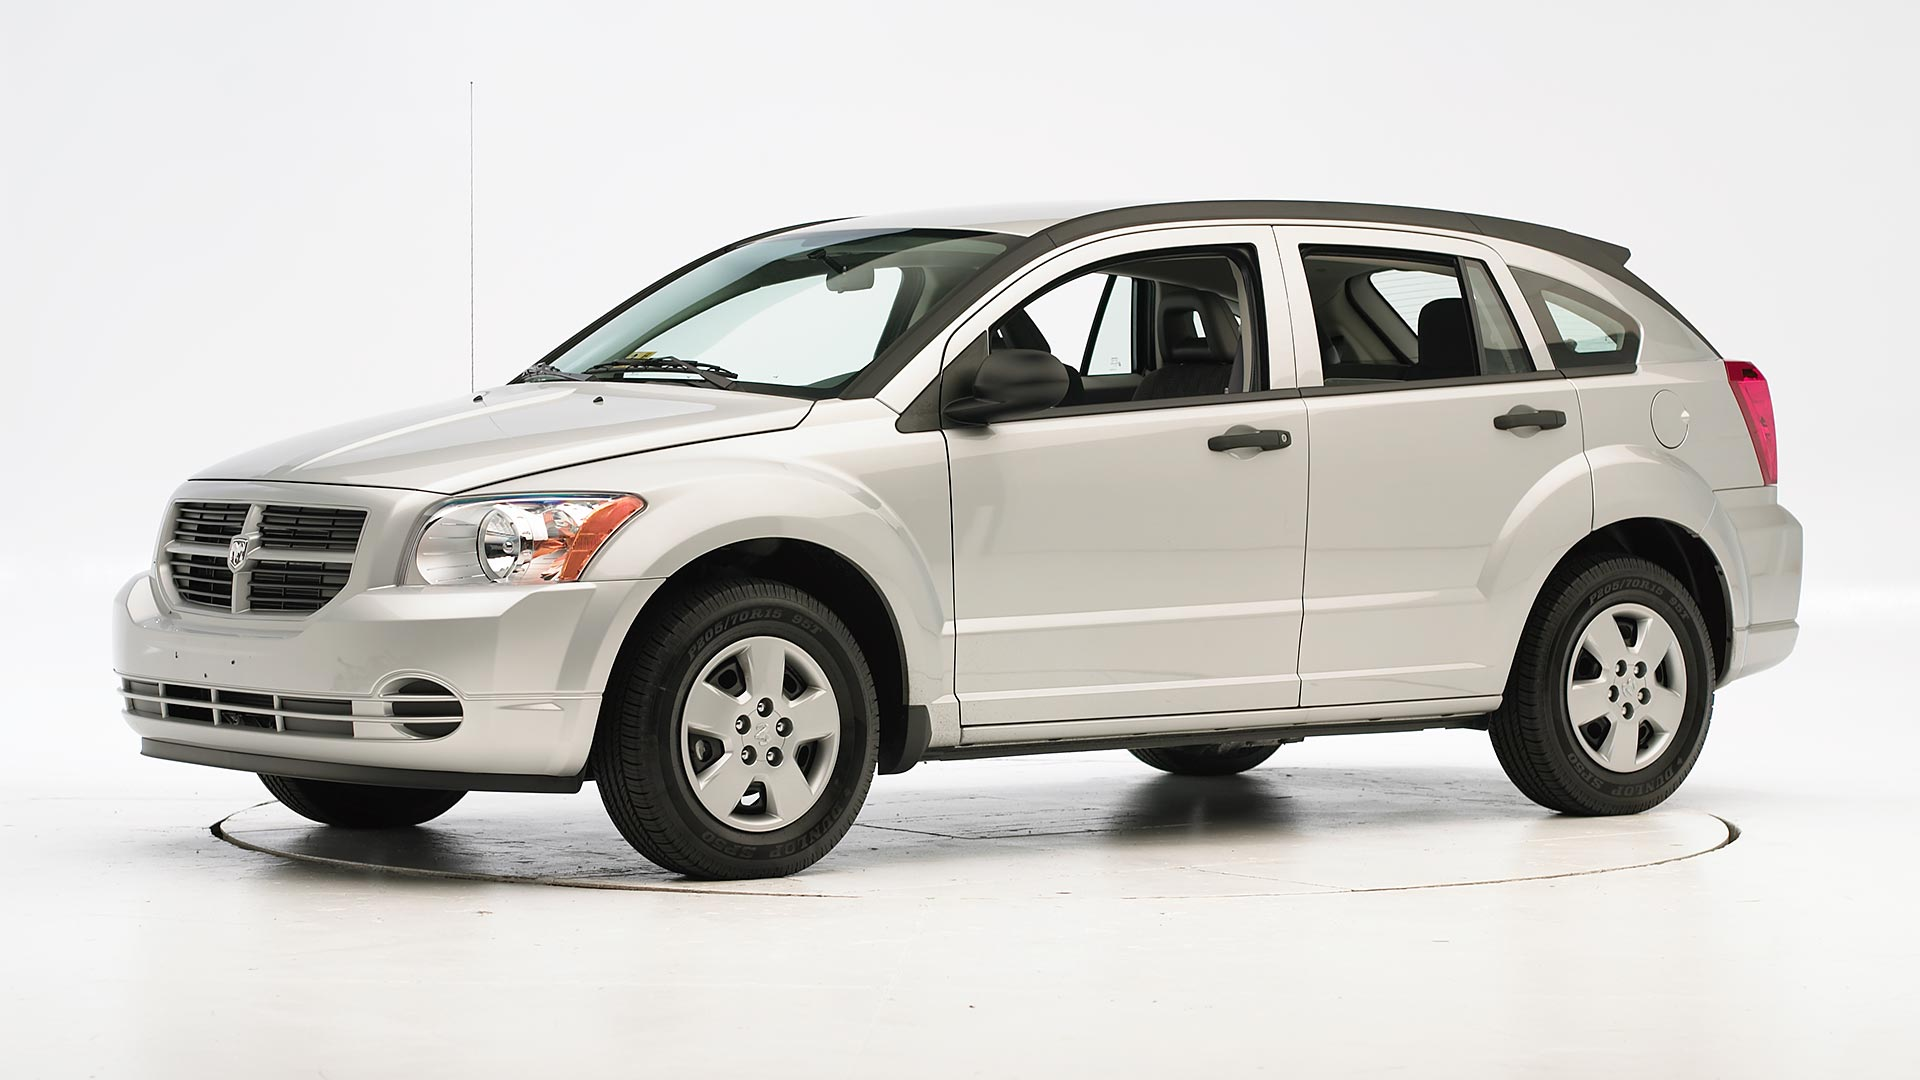 2007 Dodge Caliber 4-door wagon